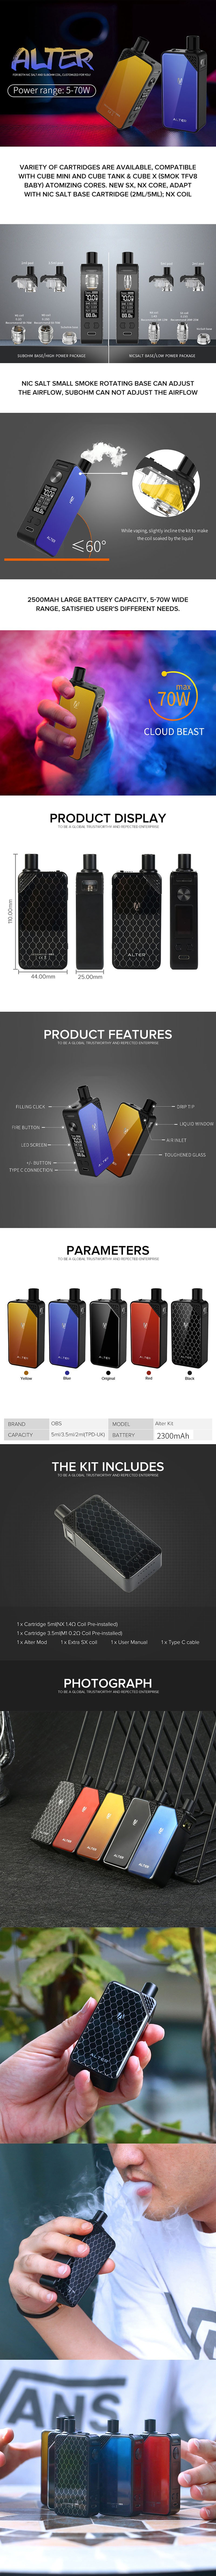 OBS Alter 70W 2500mAh VW Box Mod Pod System Starter Kit